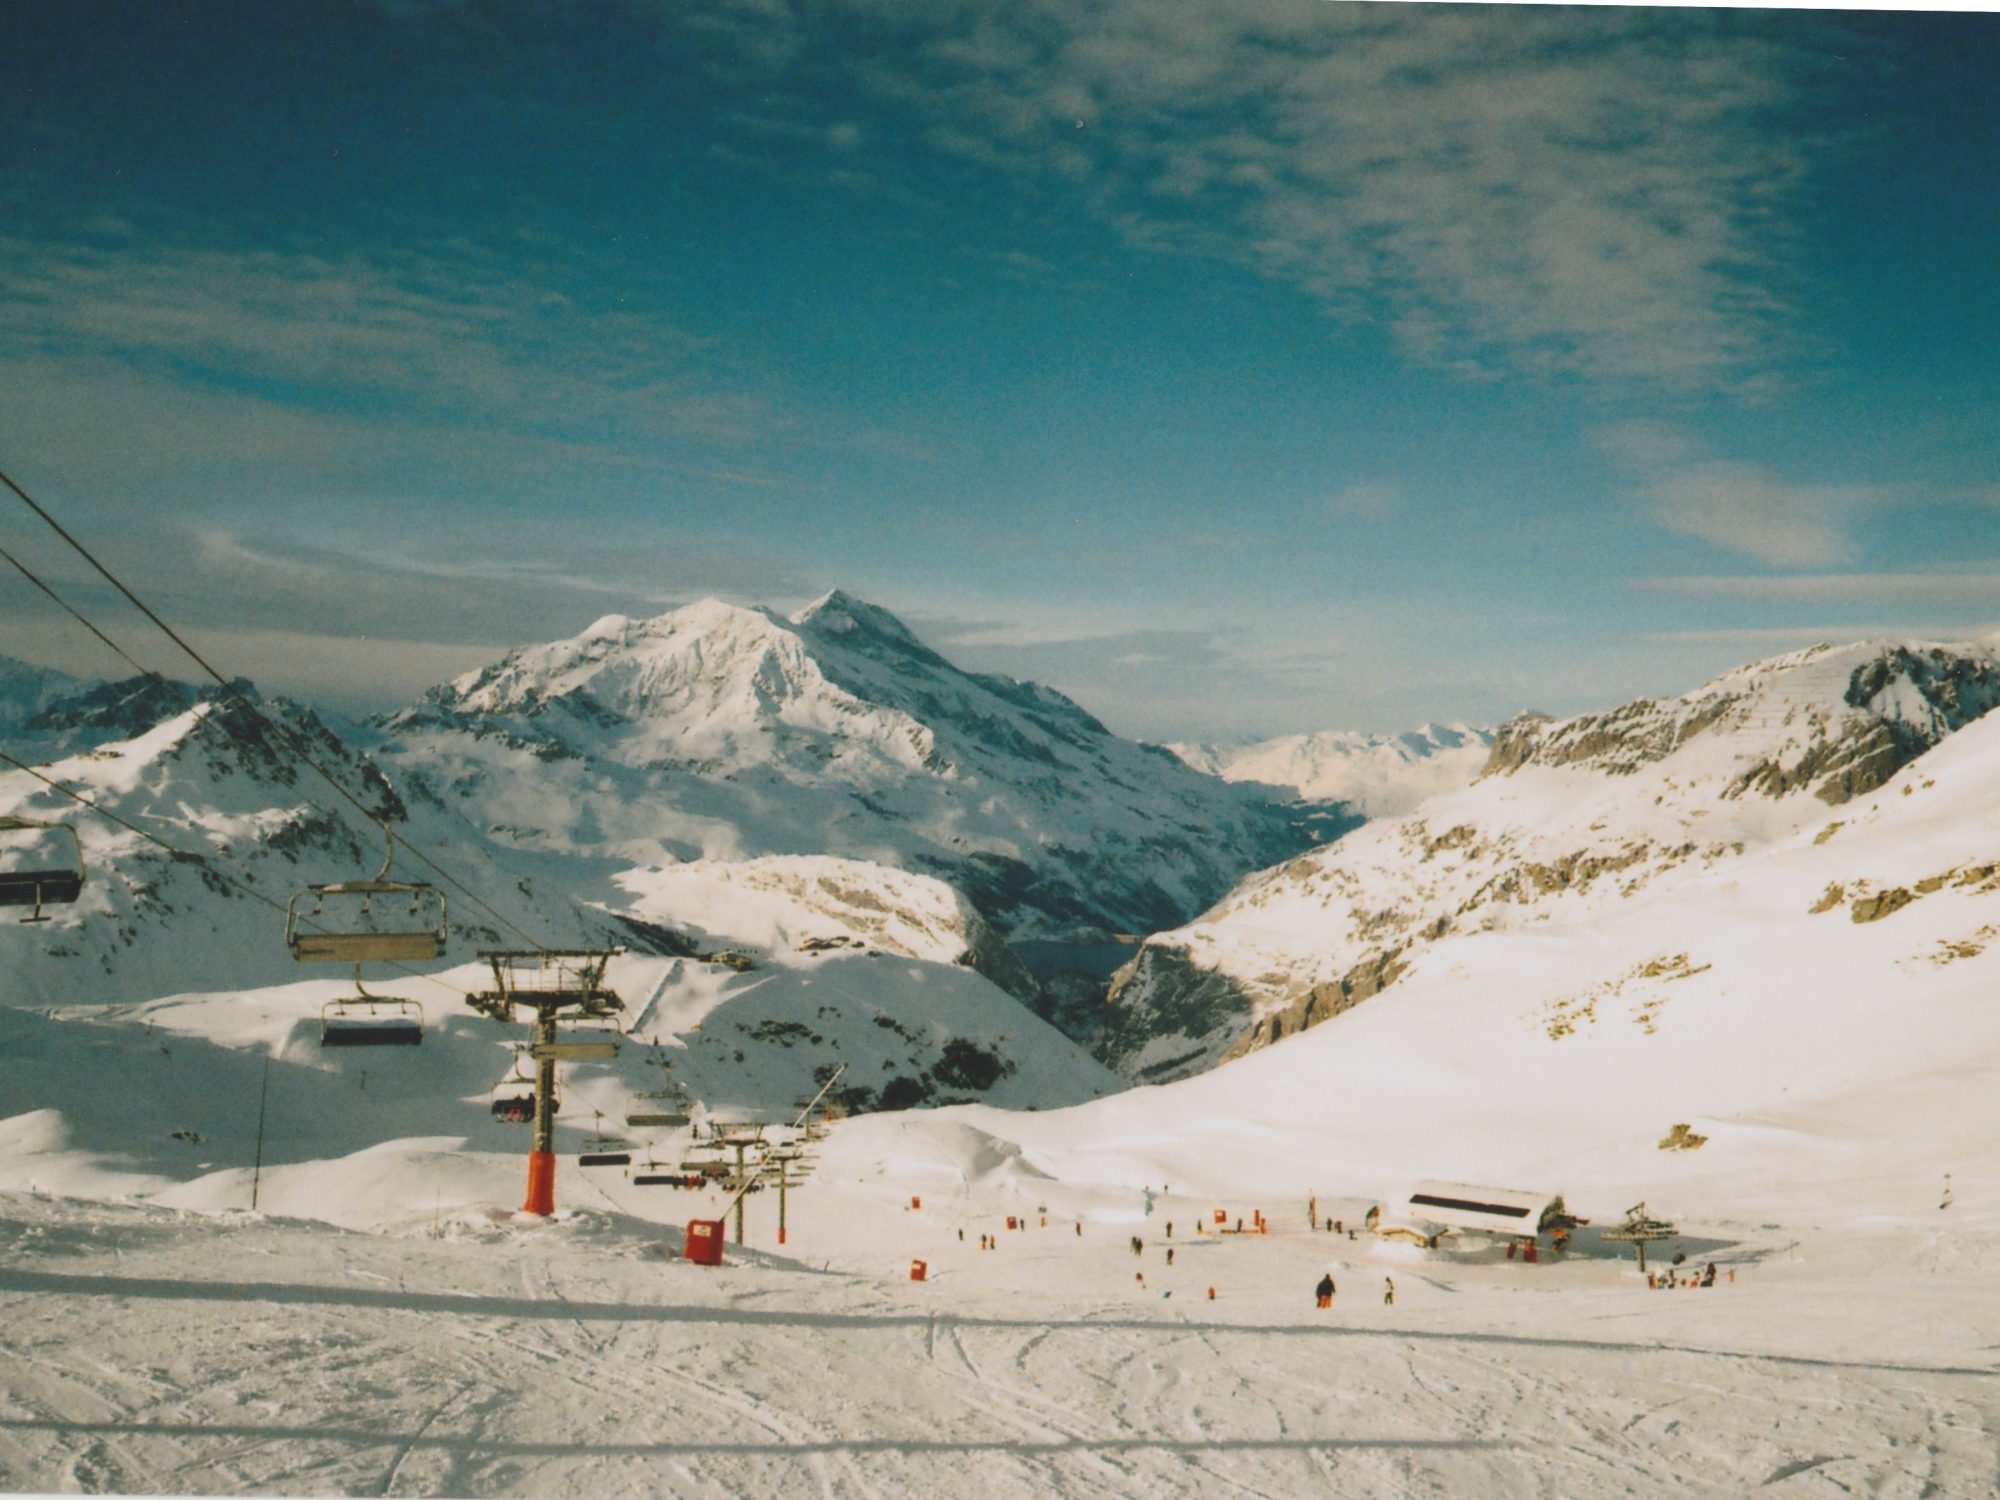 SKIING ON 35mm FILM